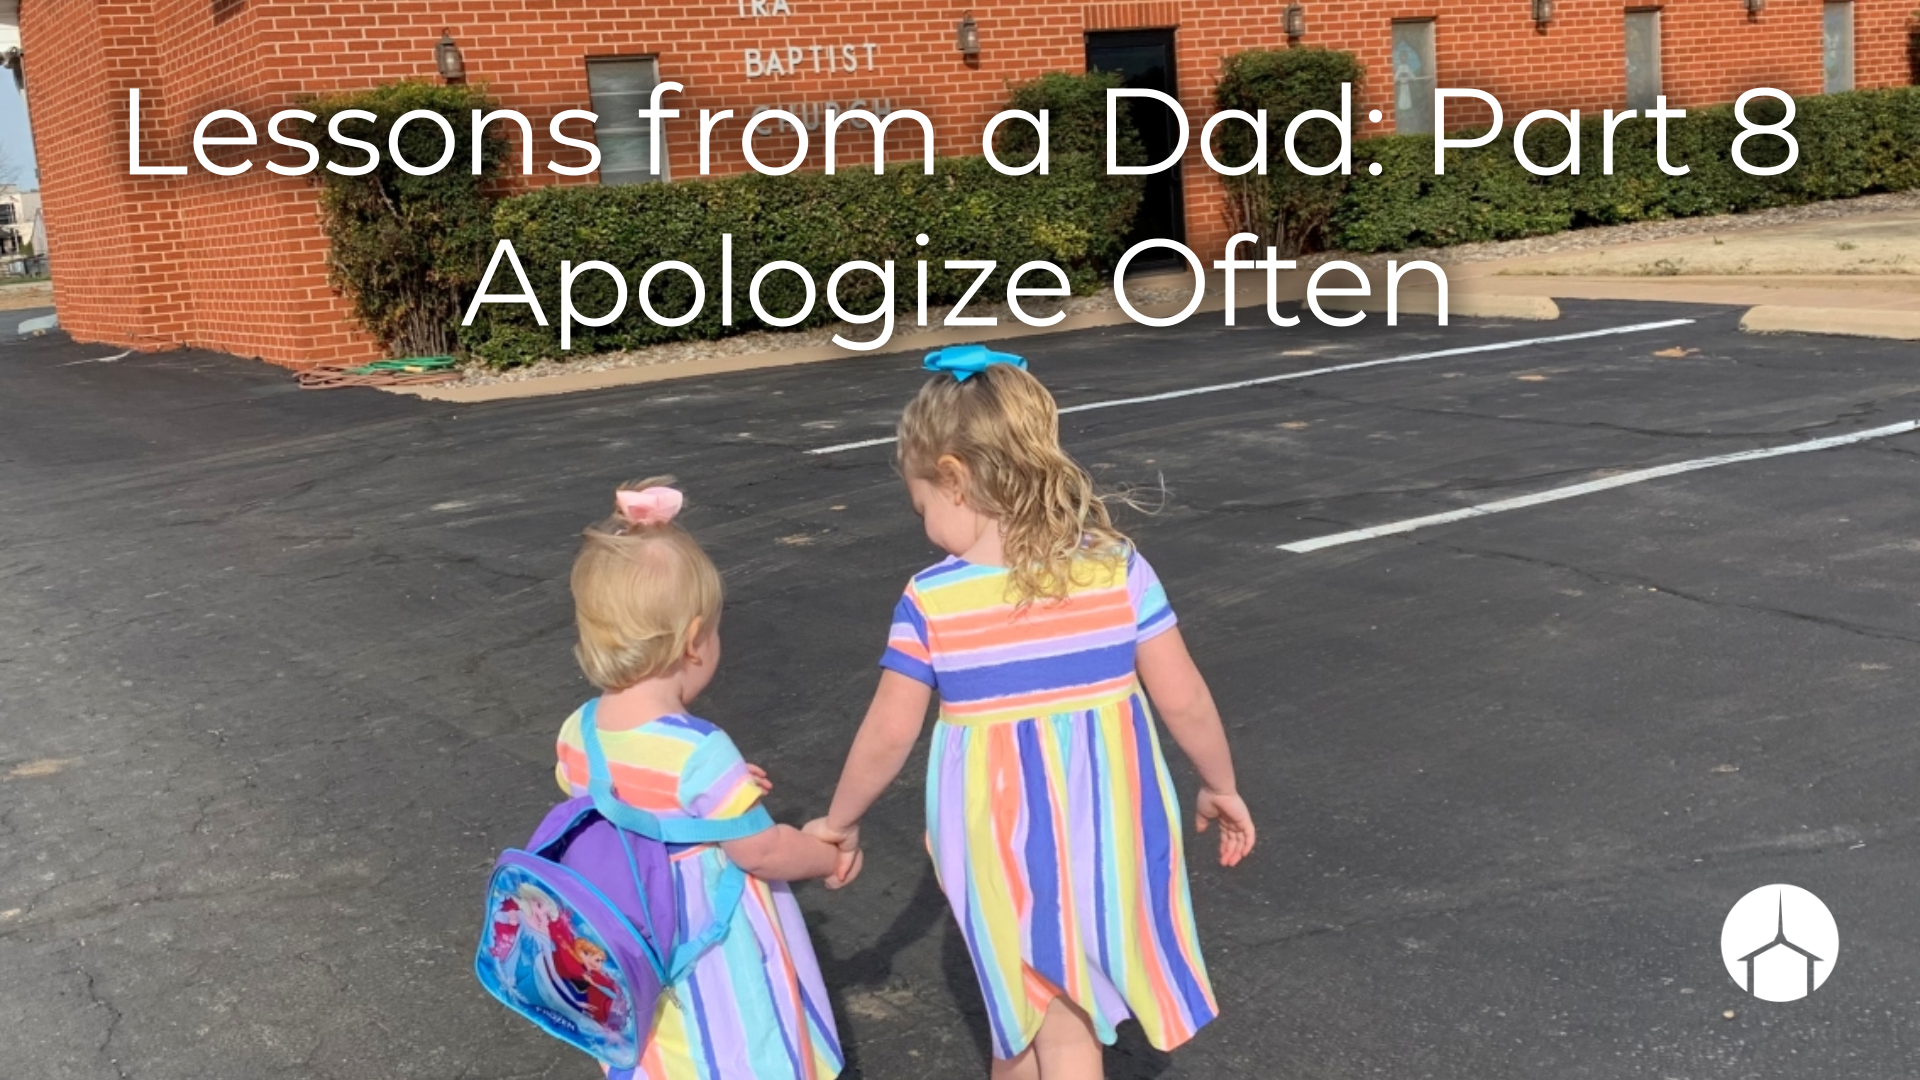 Lessons from a Dad: Part 8 Apologize often